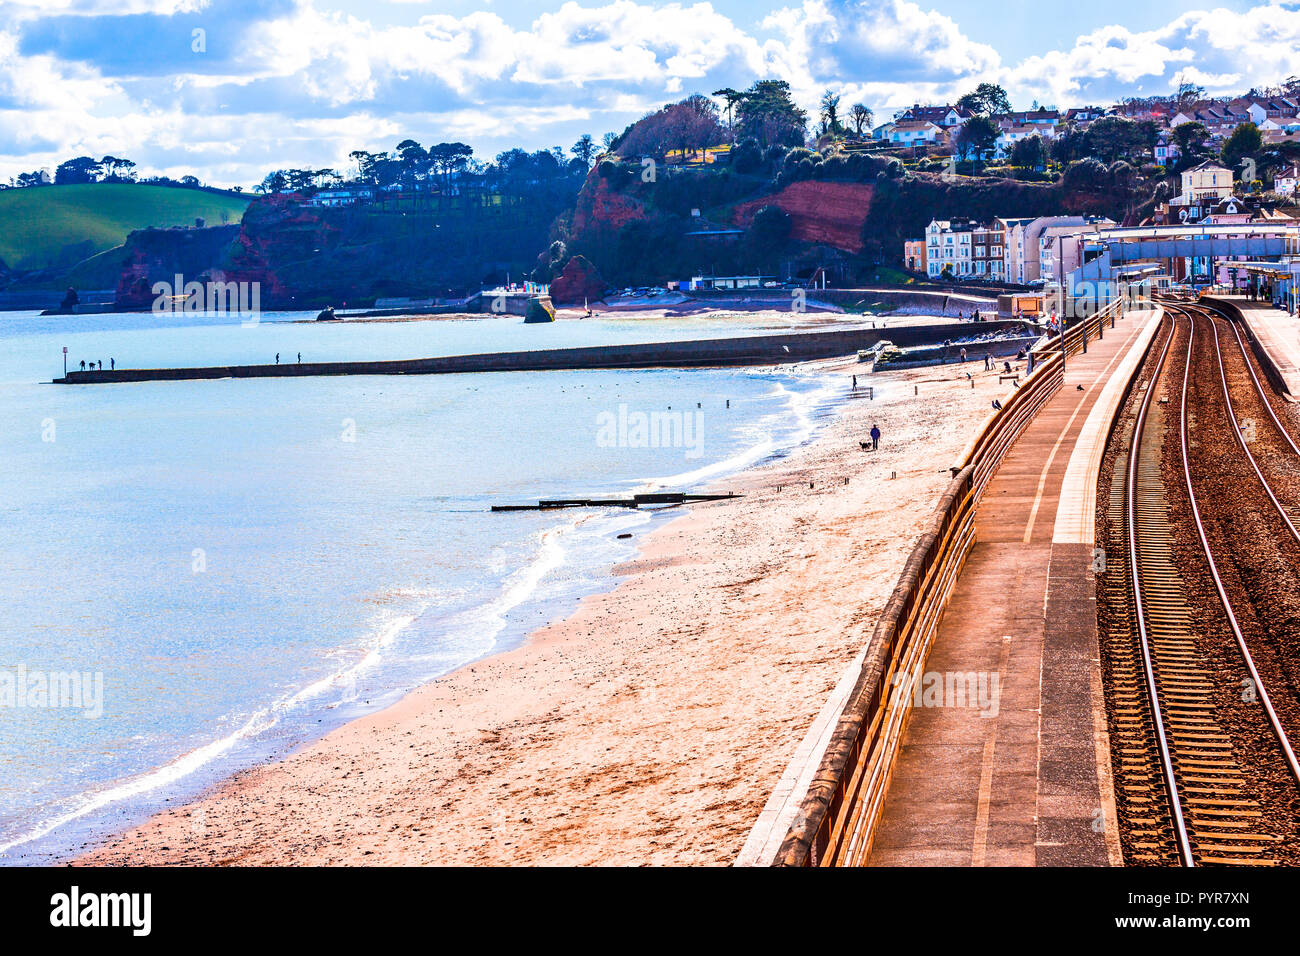 The railway trains at Dawlish ruining again after the storm damage of 2014. - Stock Image